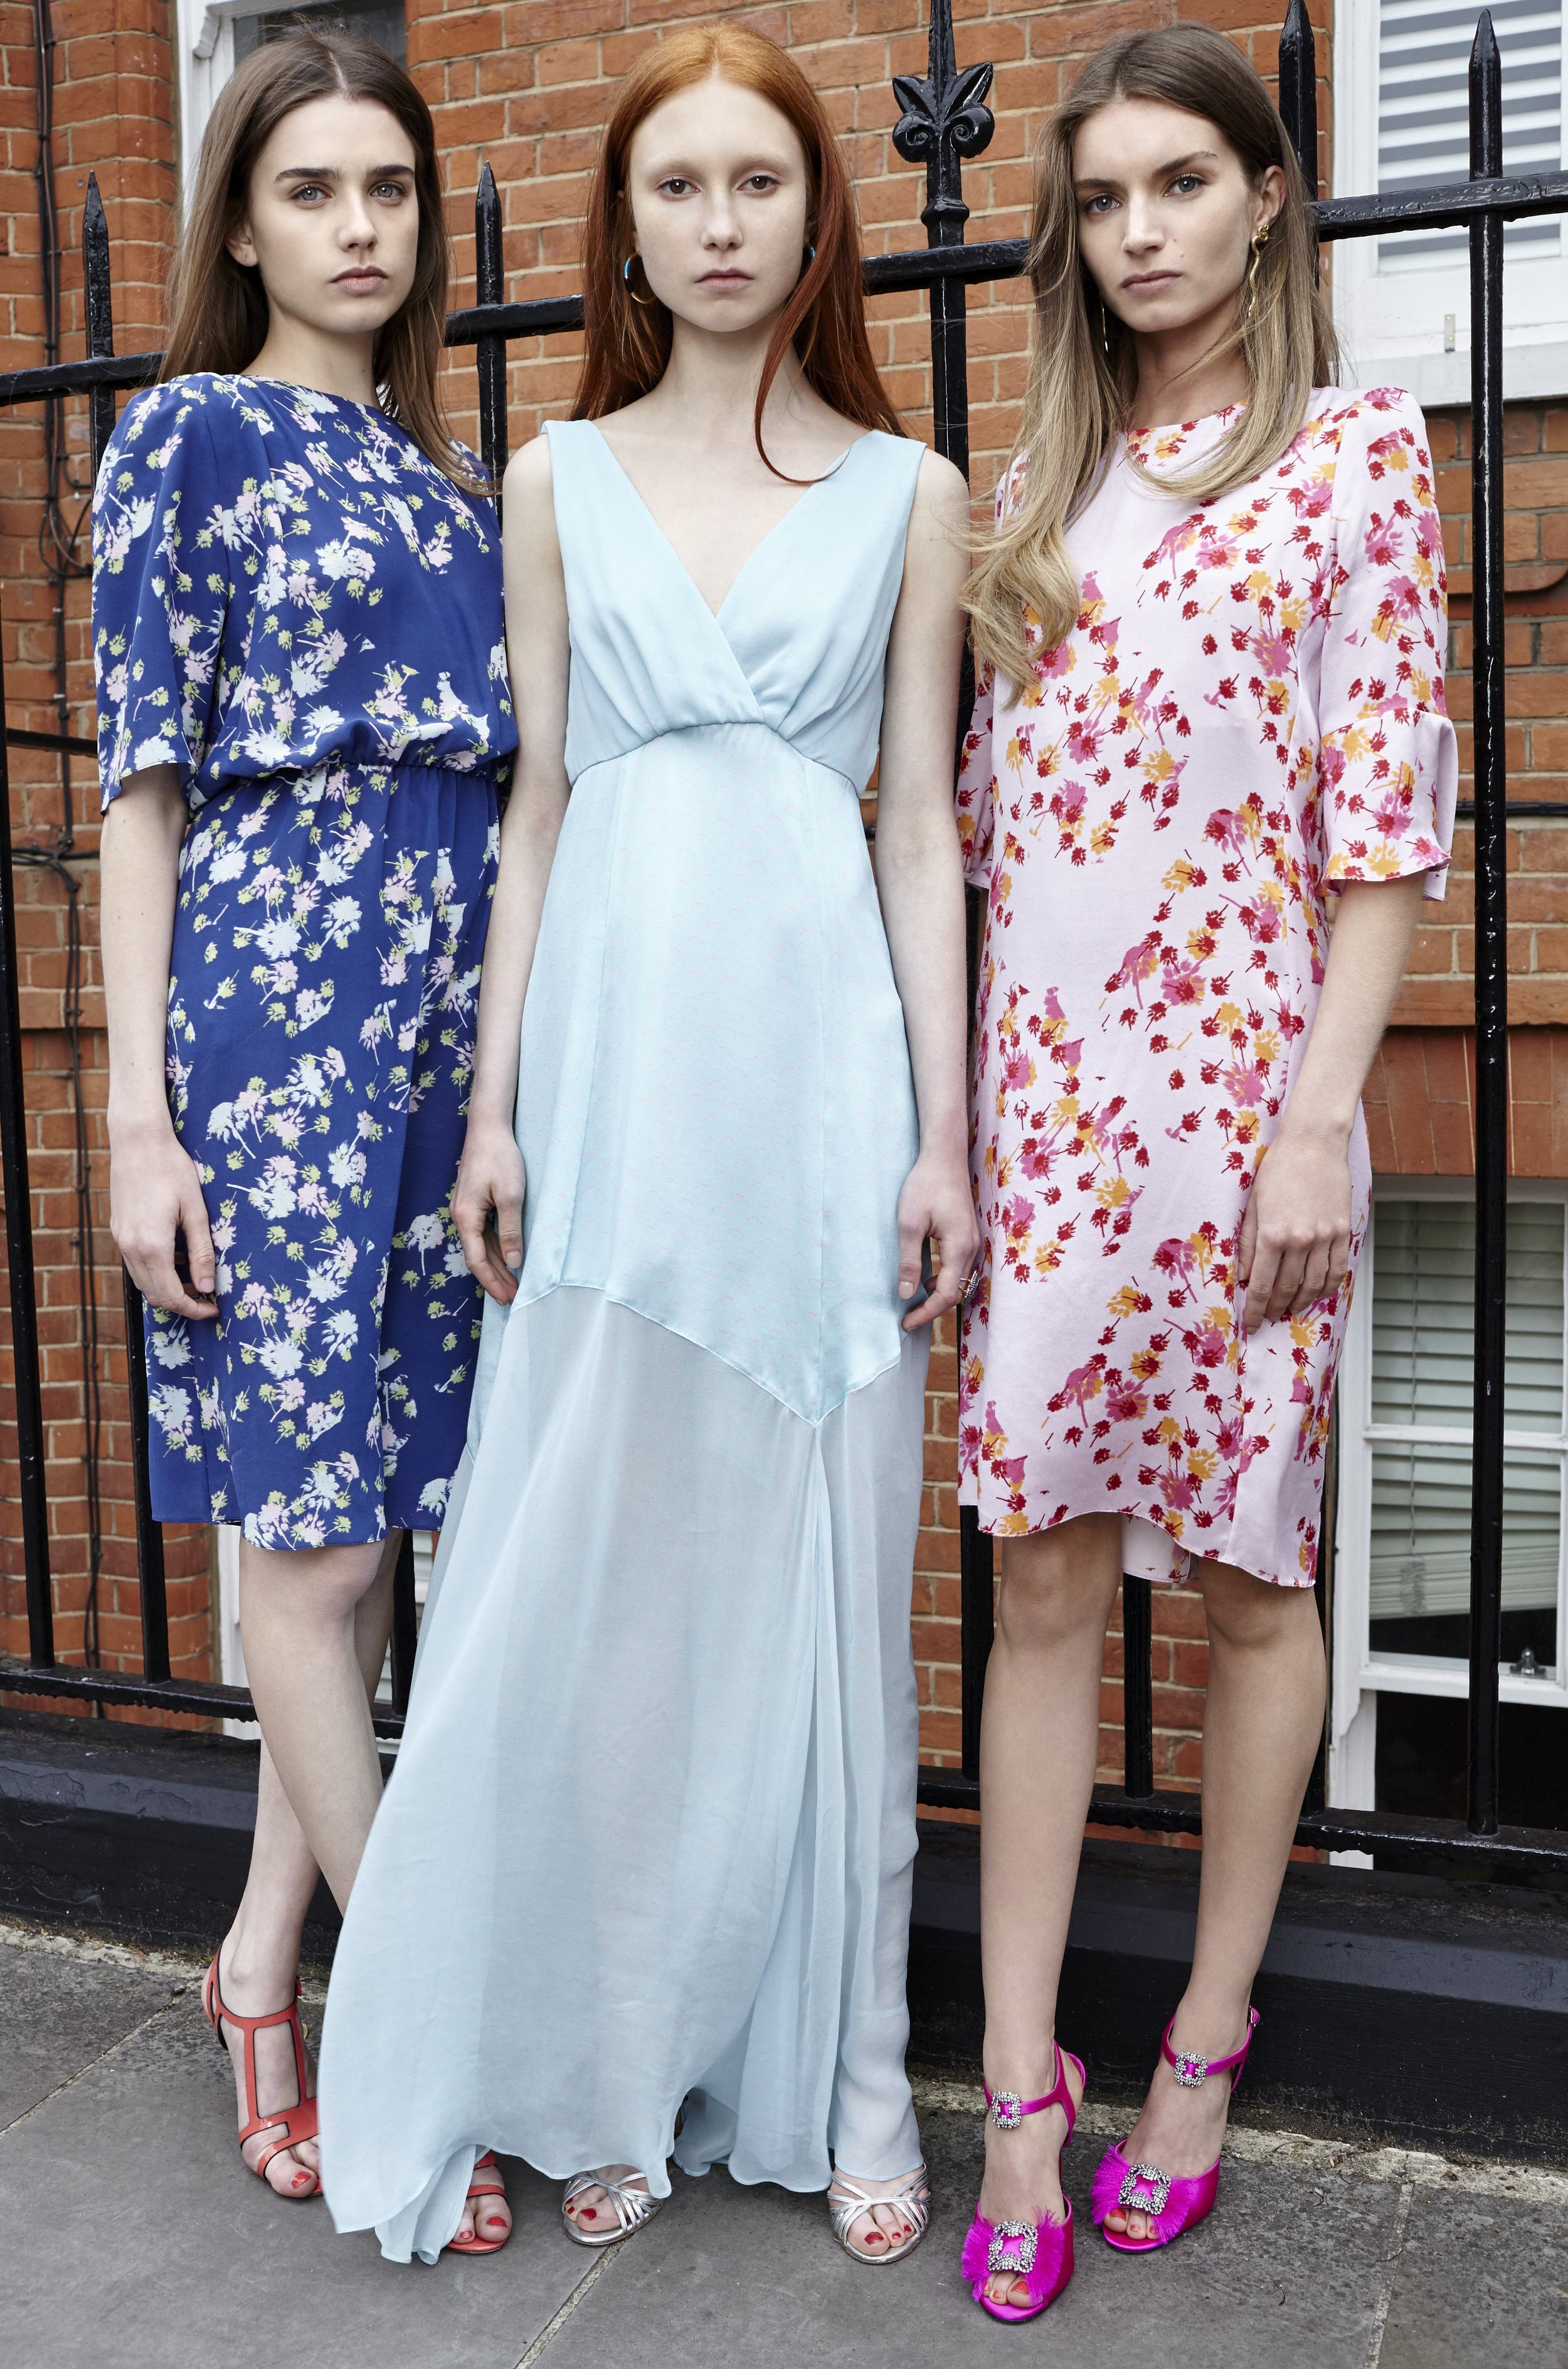 Fashion Designer Ellie Lines' Baby You Can Drive My Car Collection Silk Party Dresses